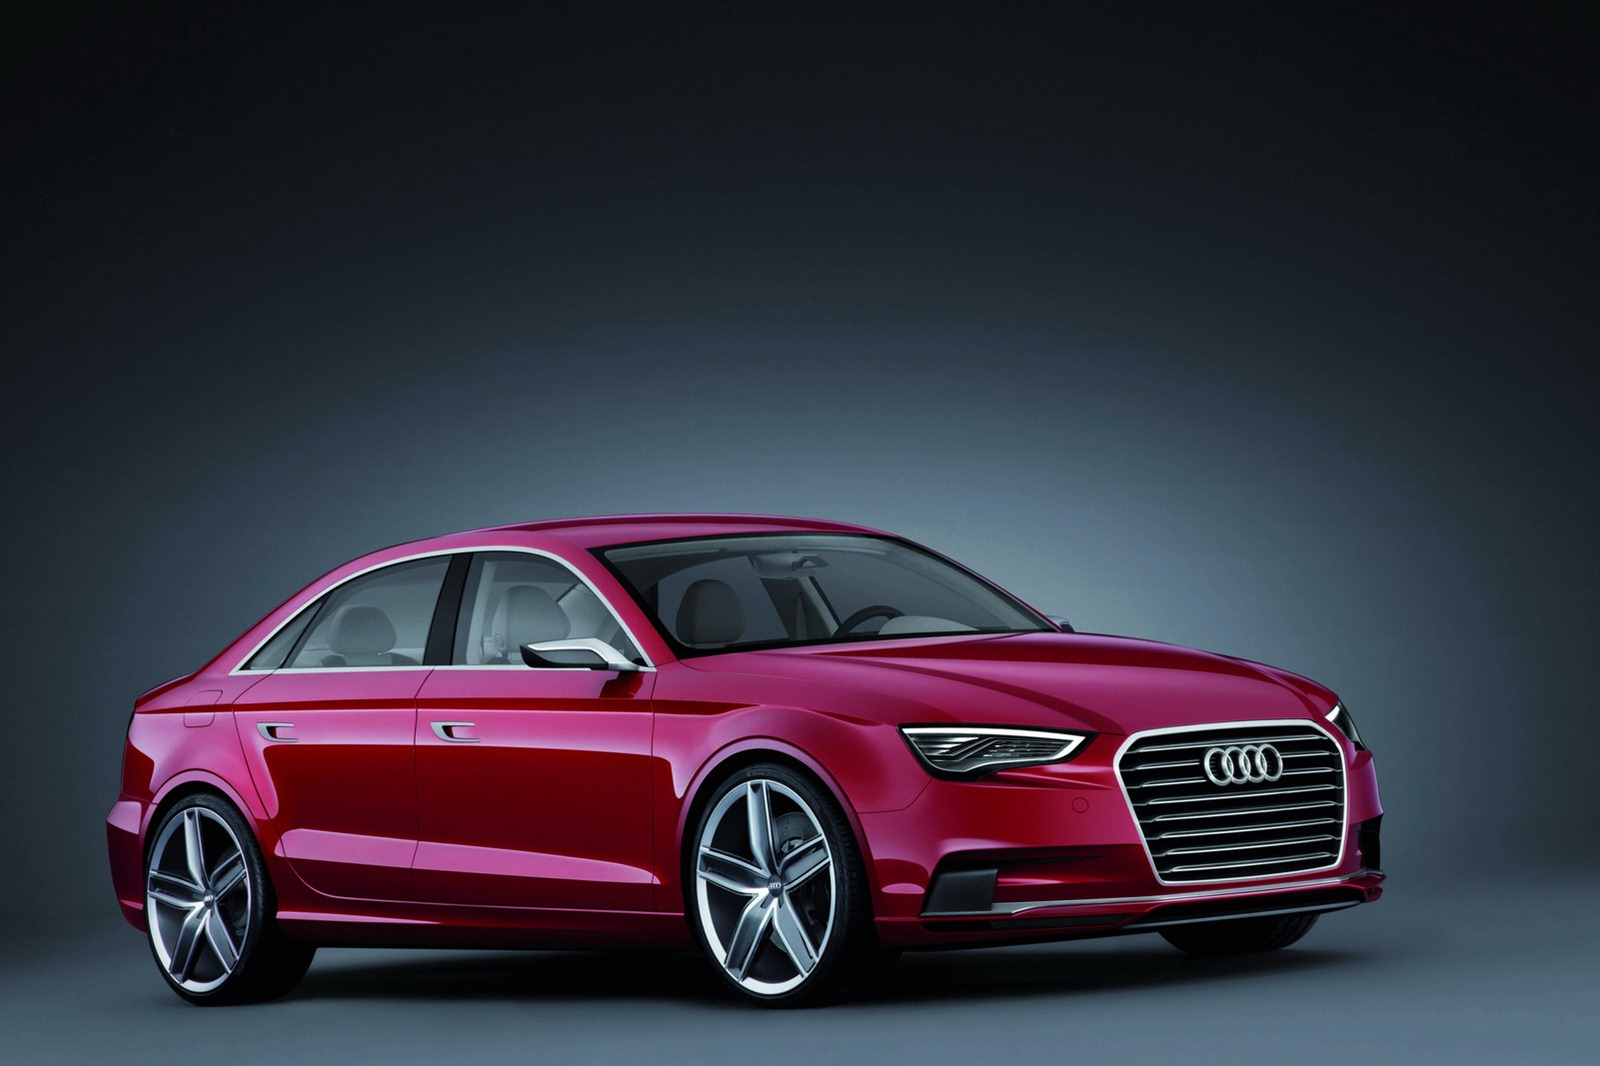 New Audi A3 and Electric R8 e-tron Coming in 2012 - autoevolution